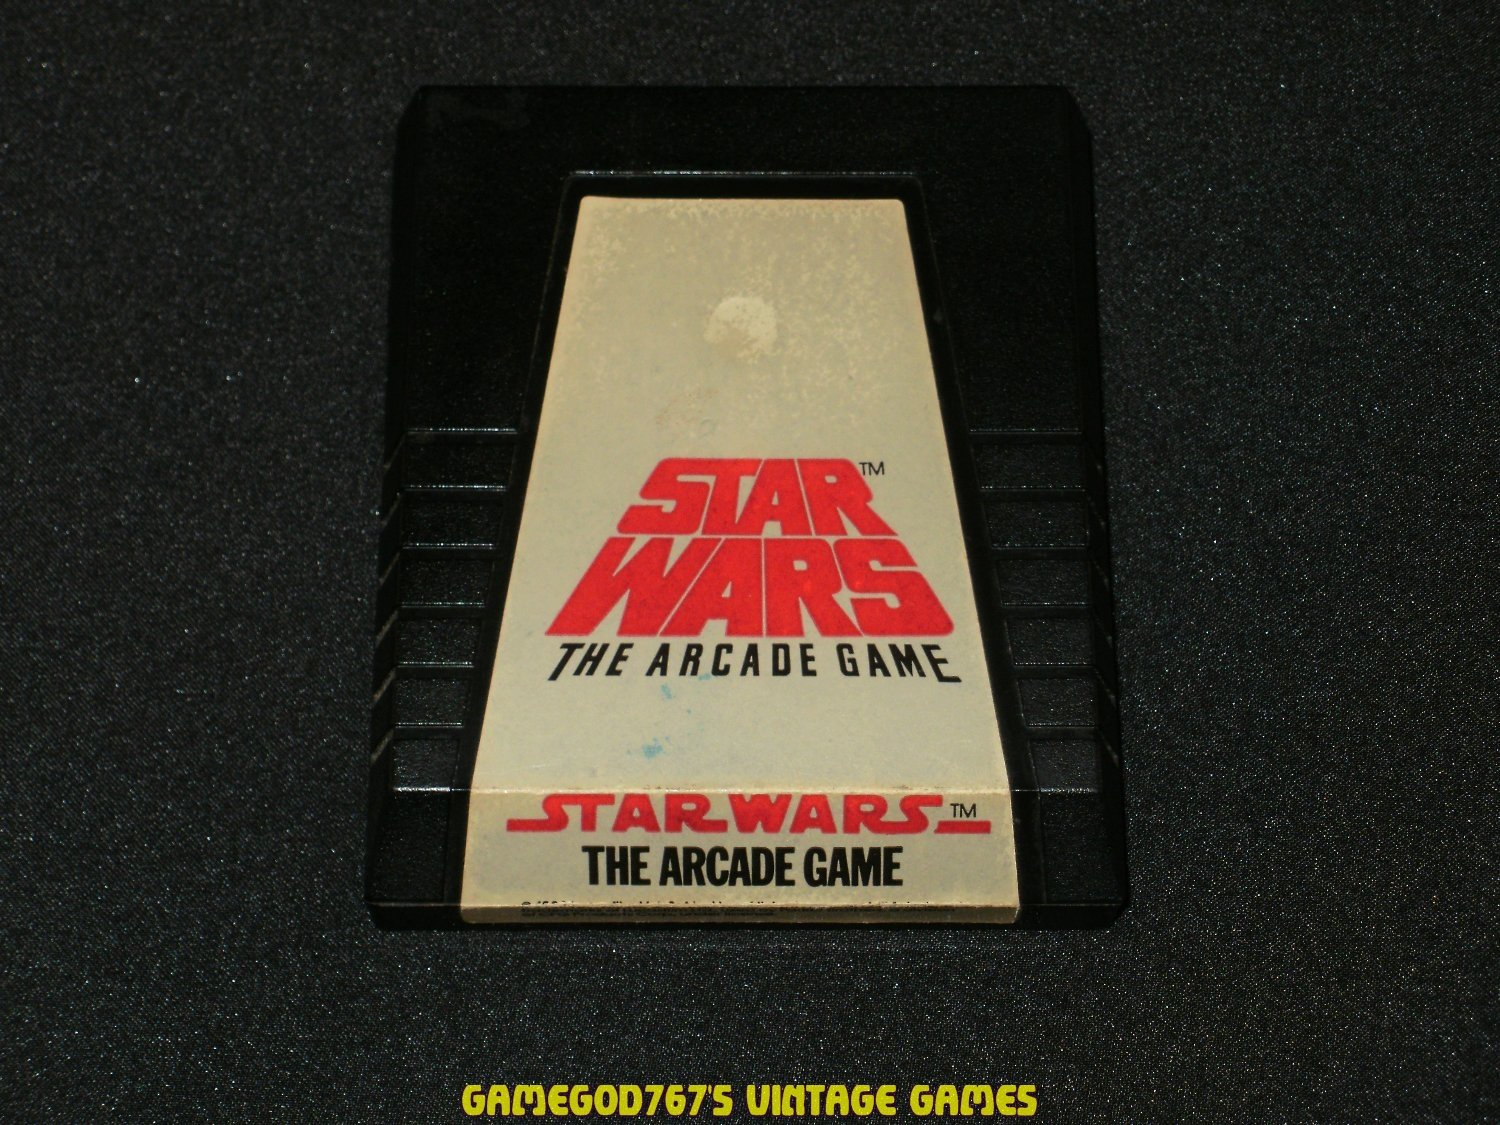 Star Wars The Arcade Game - Colecovision - Rare